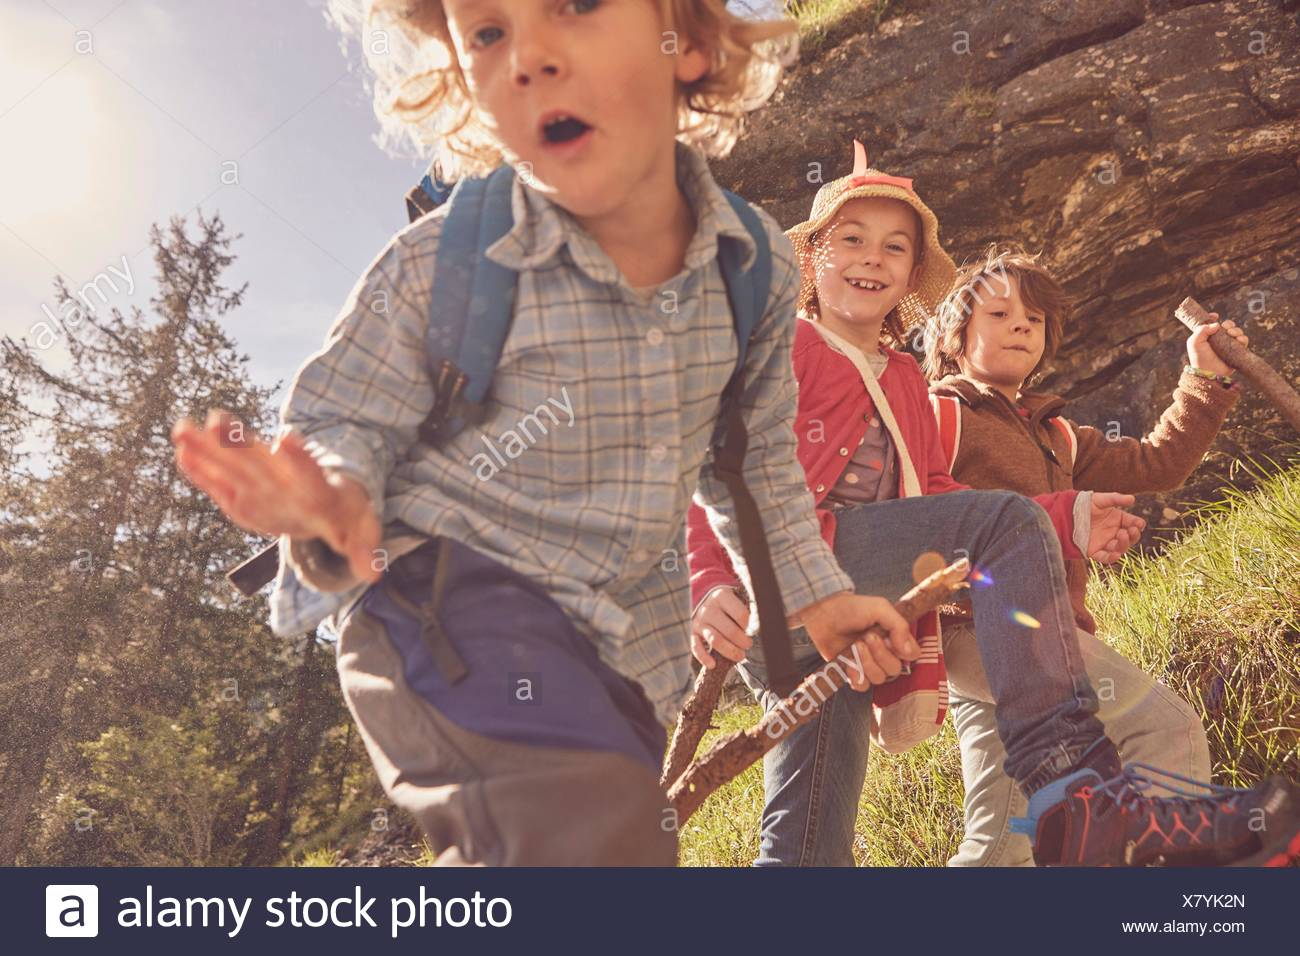 Three children exploring forest - Stock Image